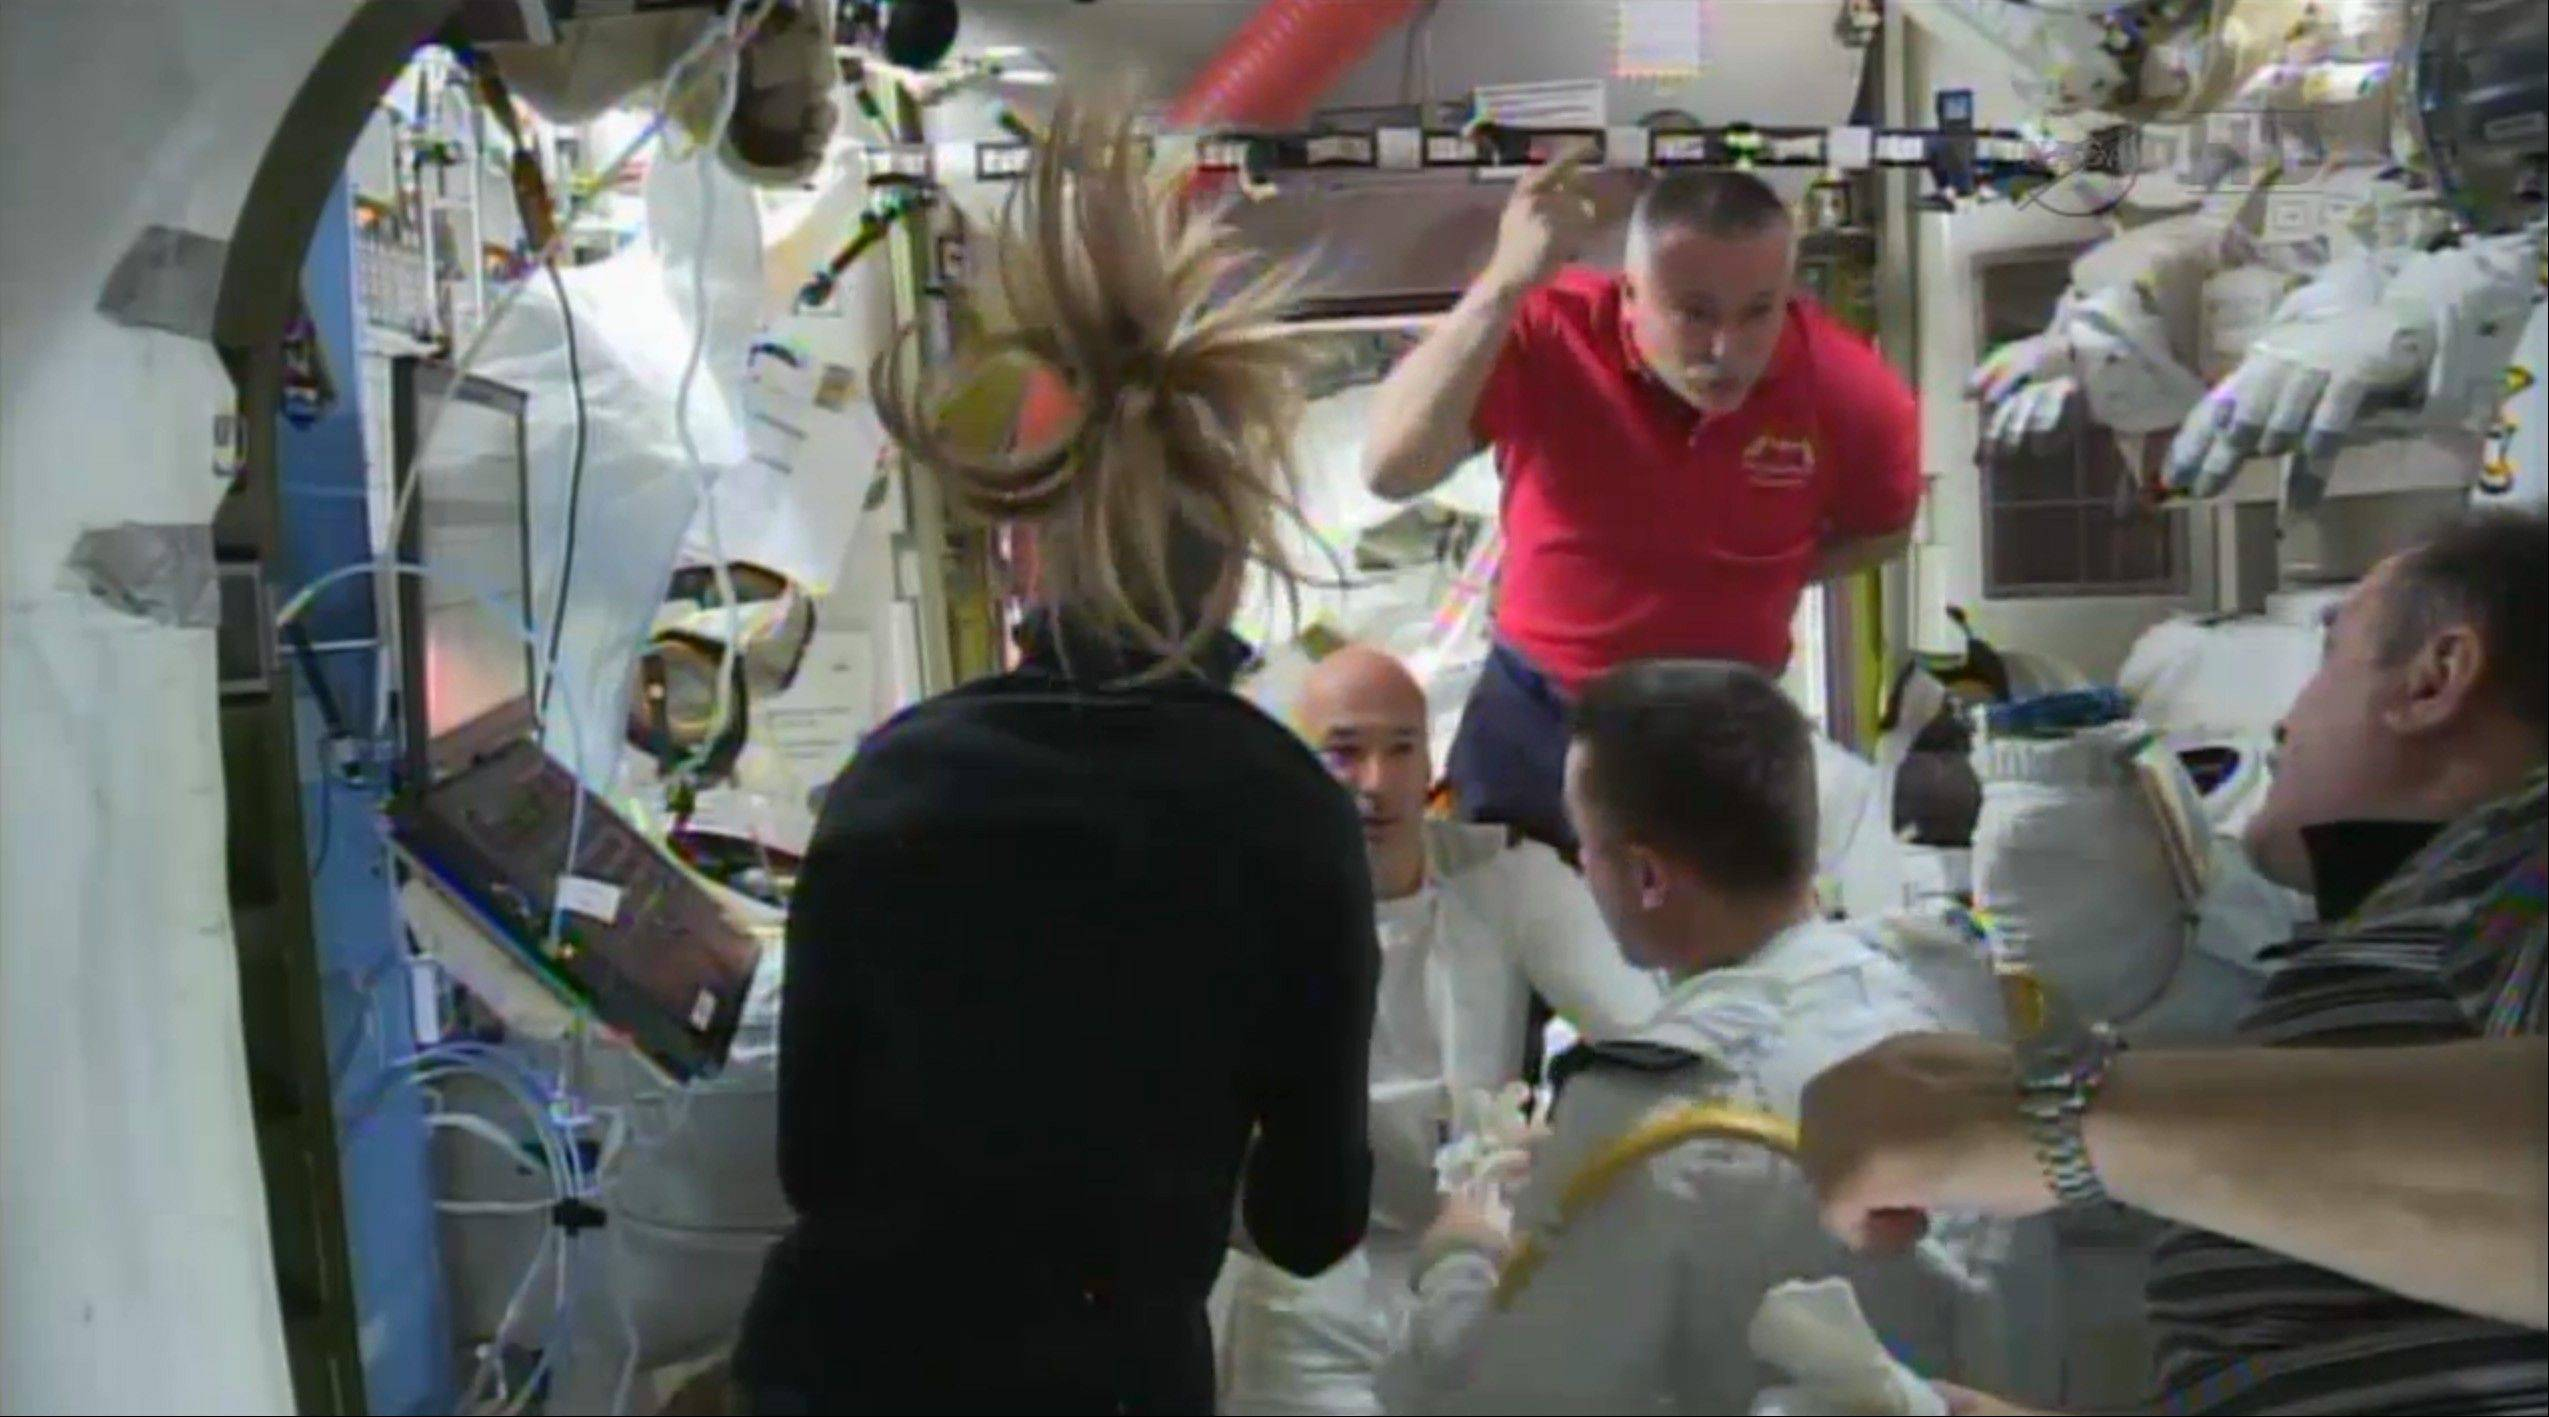 In this image from video made available by NASA, astronauts discuss the aborted spacewalk aboard the International Space Station on Tuesday. A dangerous water leak in the helmet of Luca Parmitano, bottom center facing camera in white suit, drenched his eyes, nose and mouth, preventing him from hearing or speaking as what should have been a routine spacewalk came to an abrupt end.